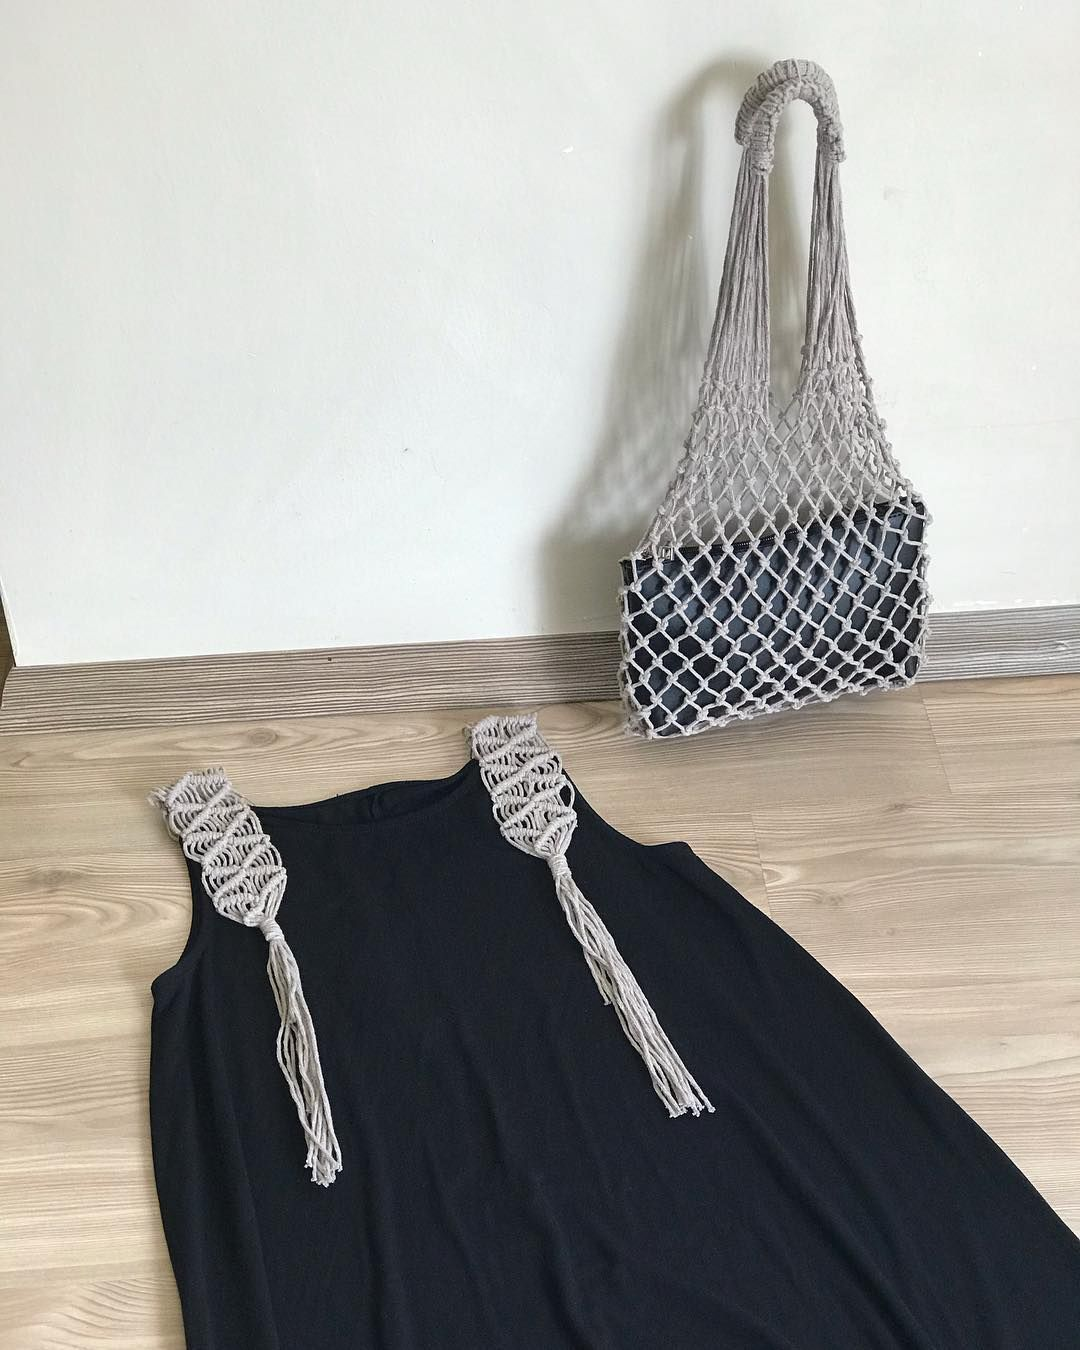 "Photo of Safiye Ayla Baran on Instagram: ""Macrame bag & Macrame hanger dress combination for summer … I think it is a beautiful duo …"